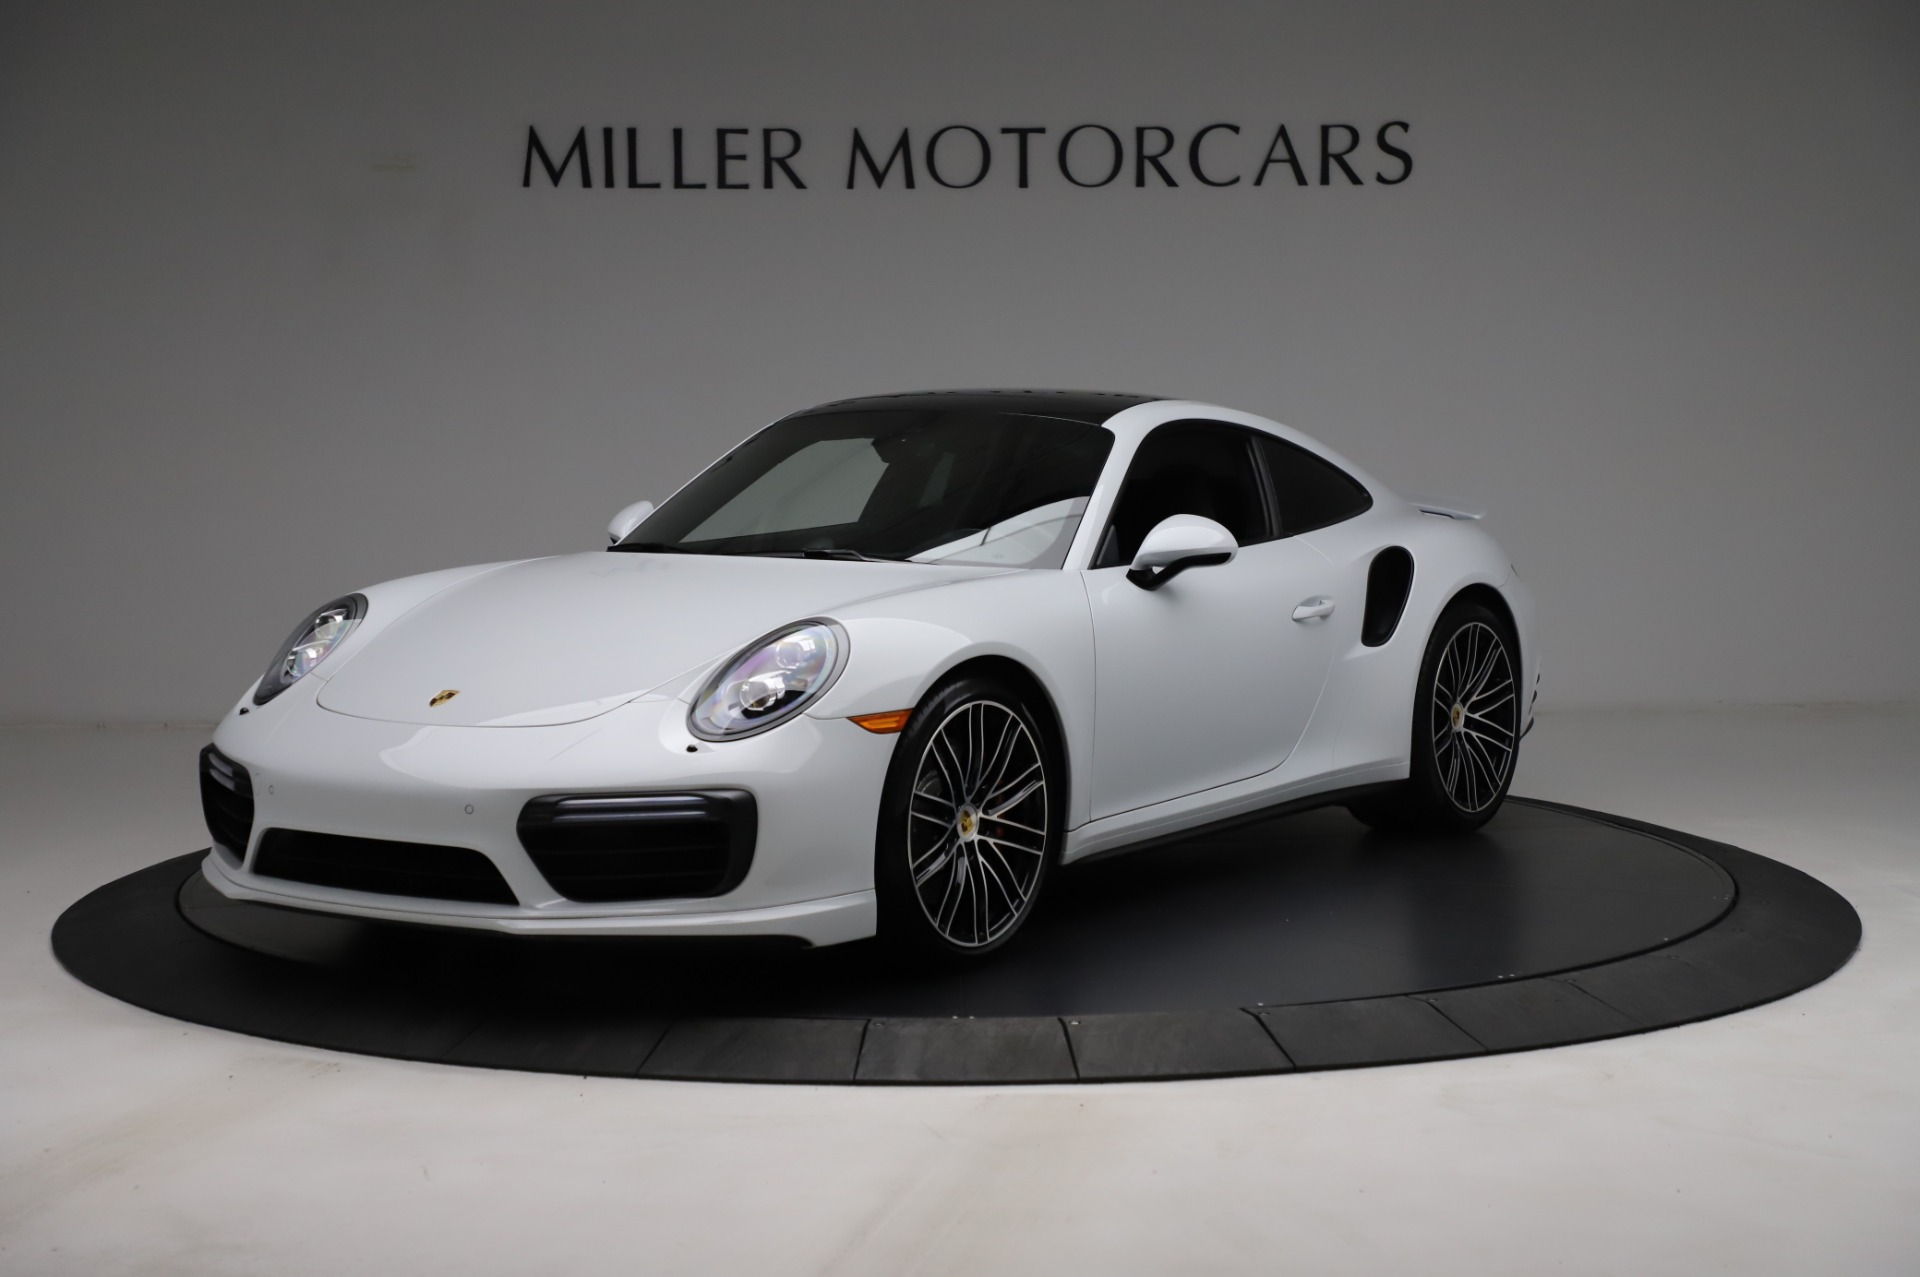 Used 2018 Porsche 911 Turbo for sale $159,990 at Pagani of Greenwich in Greenwich CT 06830 1